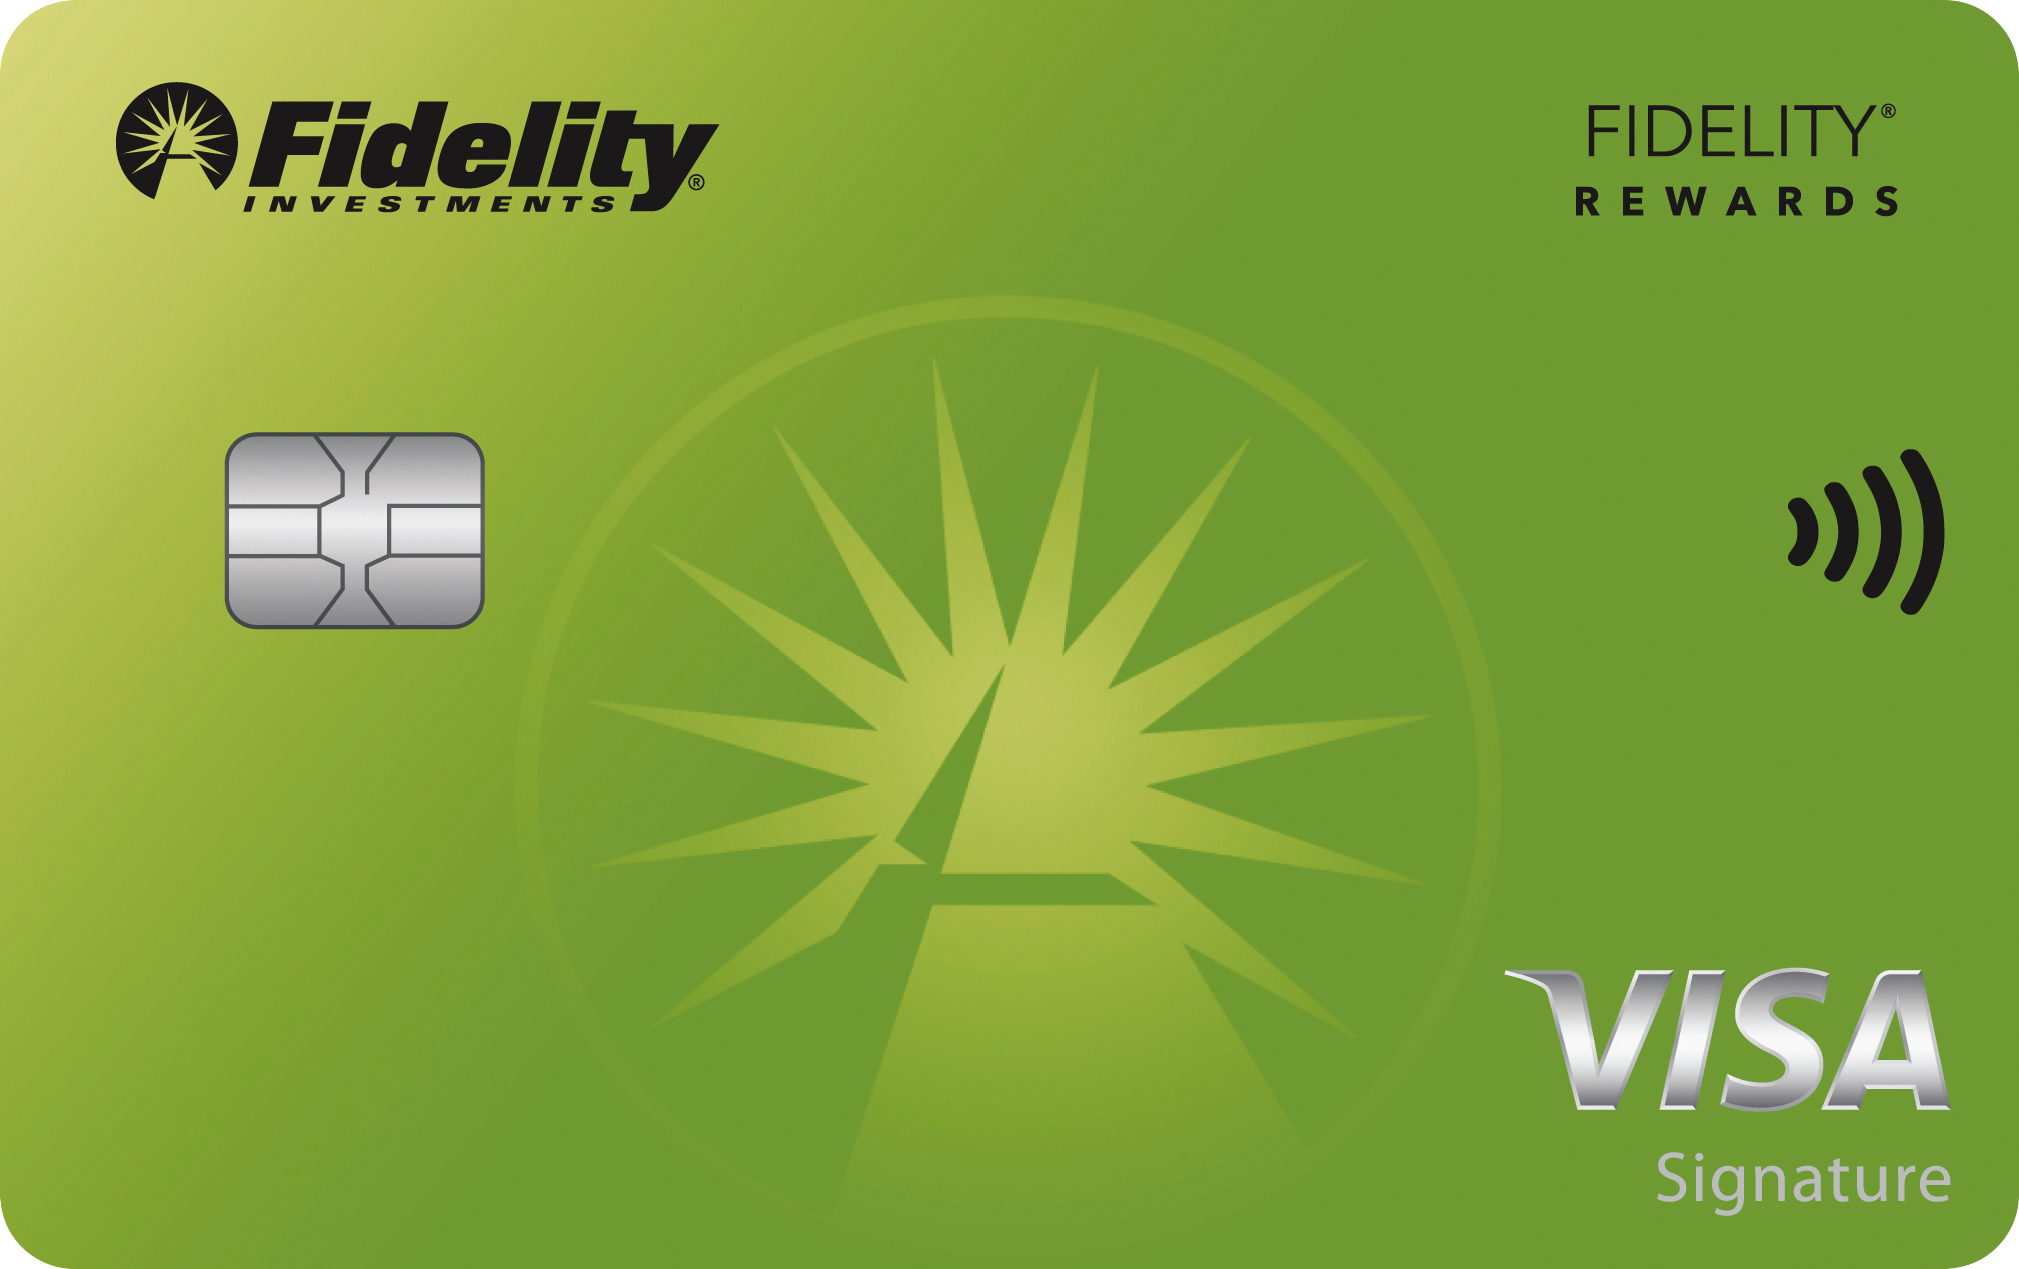 Fidelity Rewards Visa Credit Card